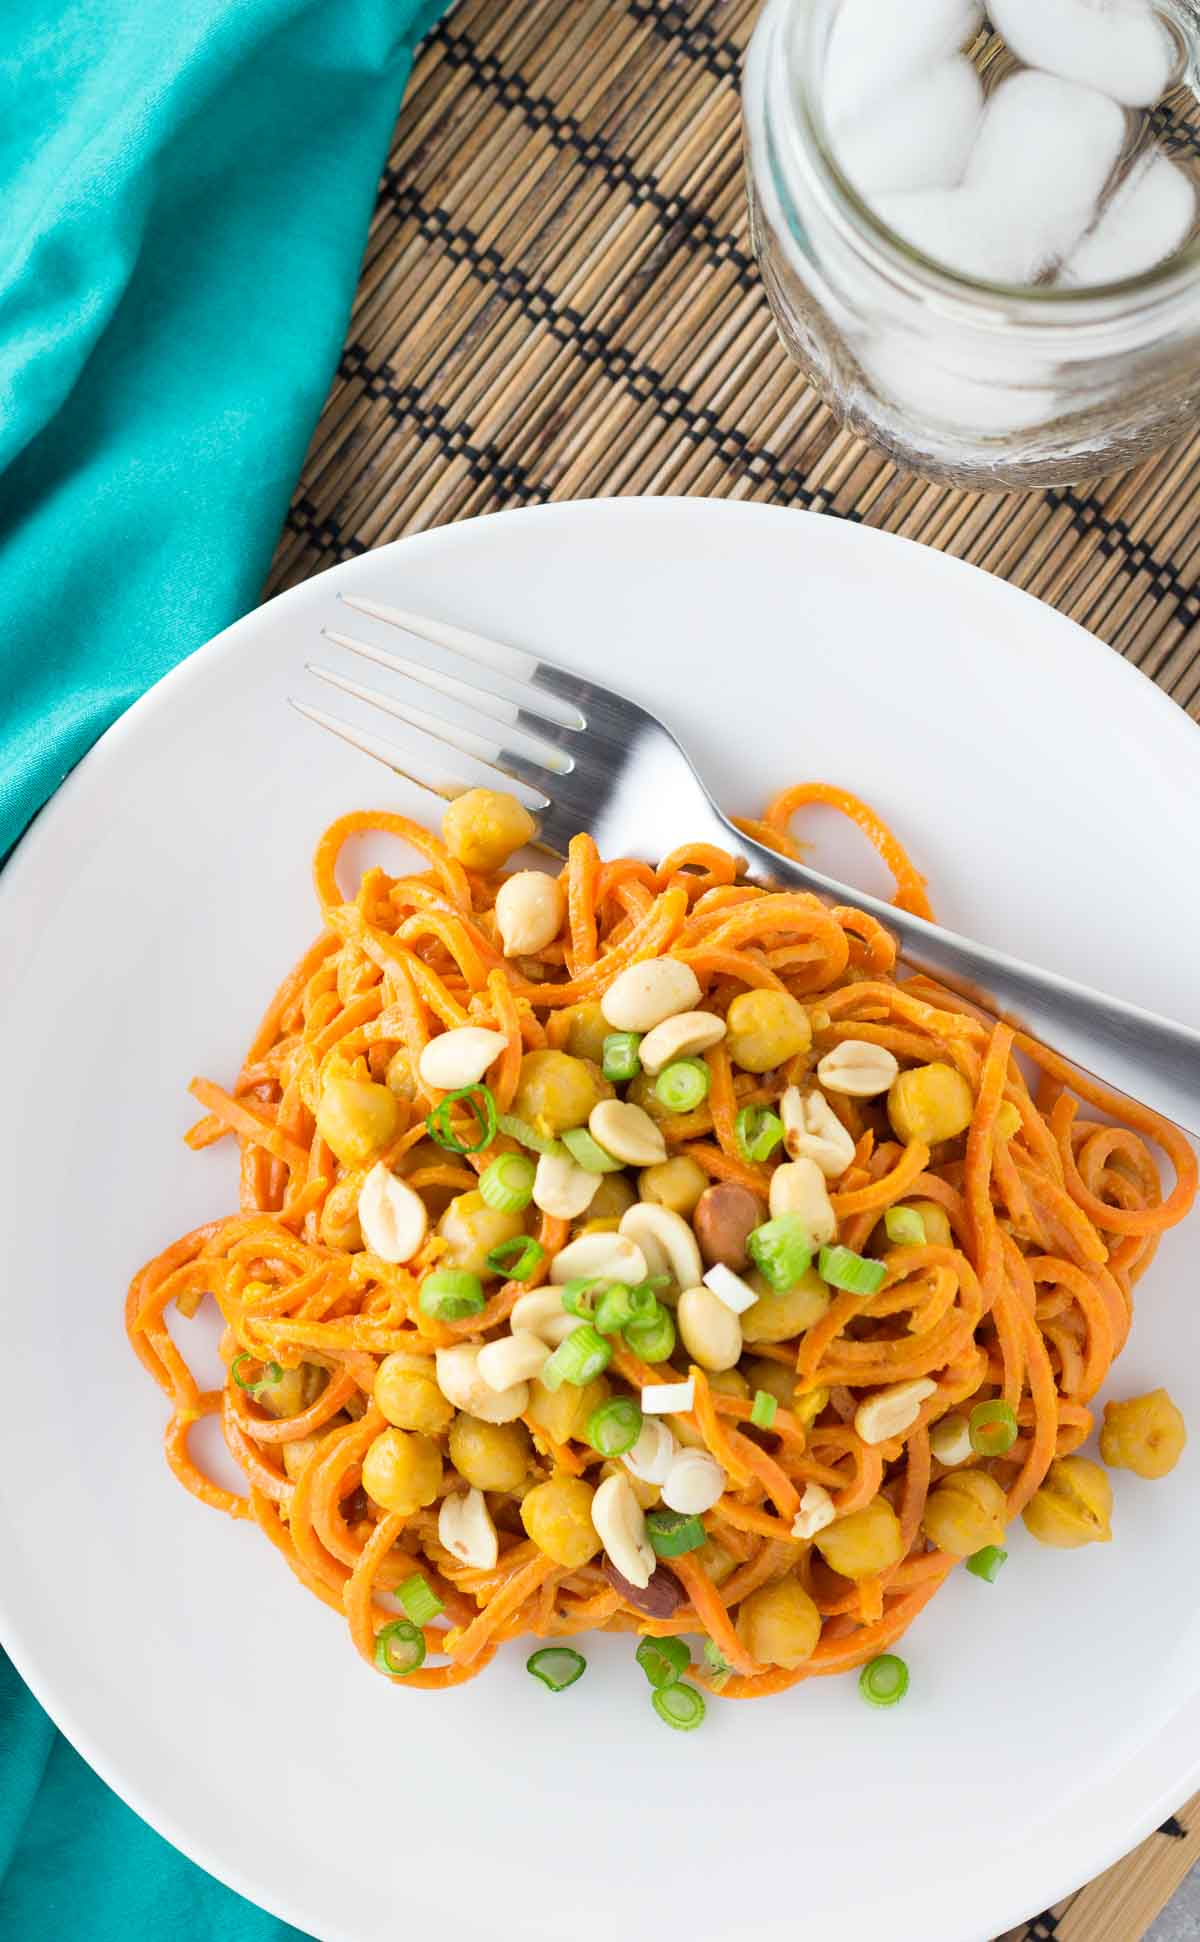 sweet potato noodles on a plate with peanuts and green onions